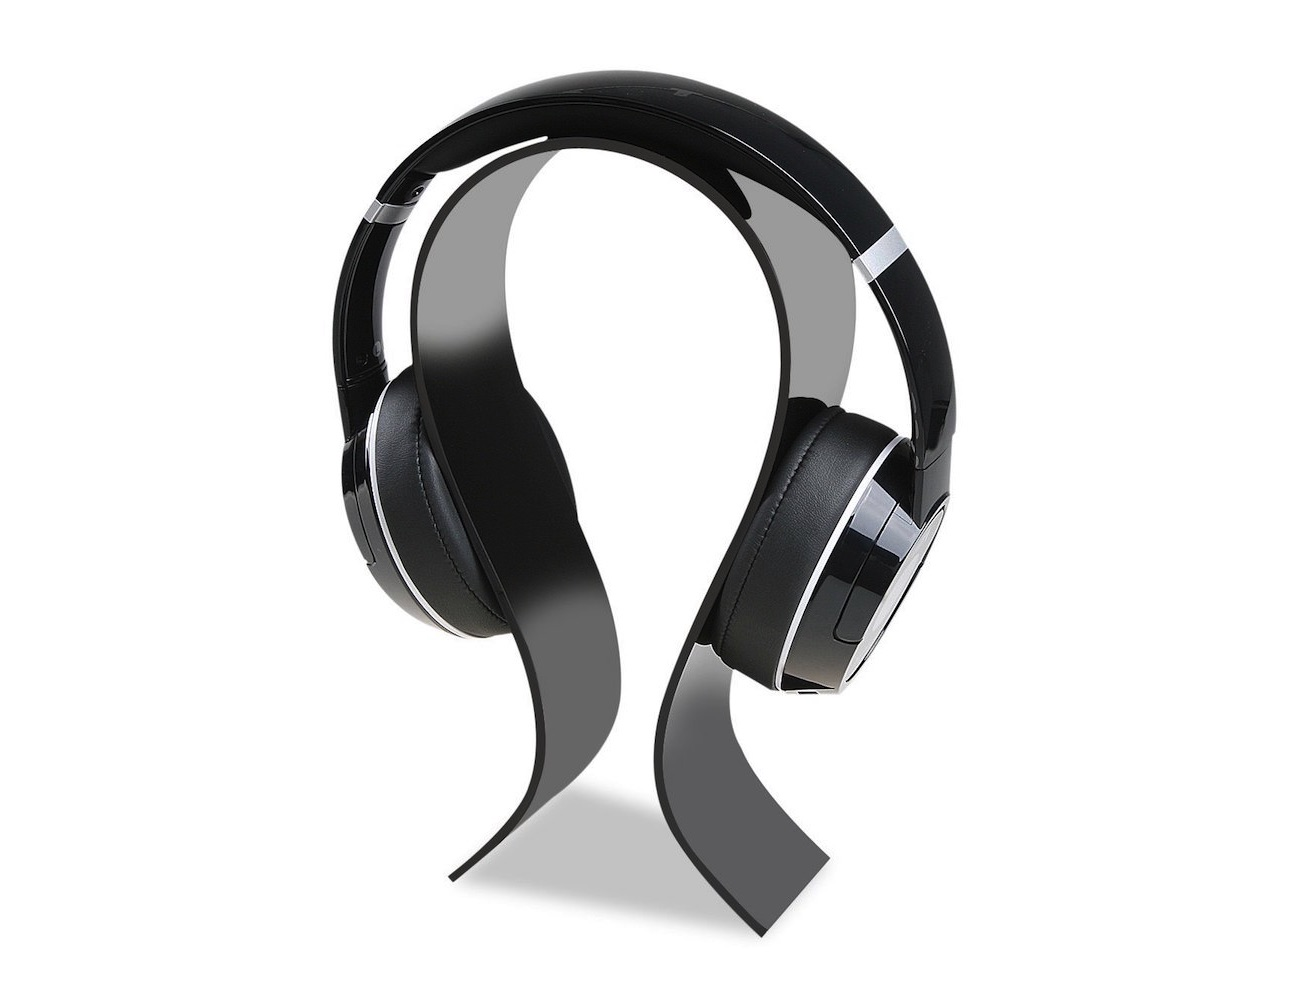 Omega Acrylic Headphone Stand by AmoVee